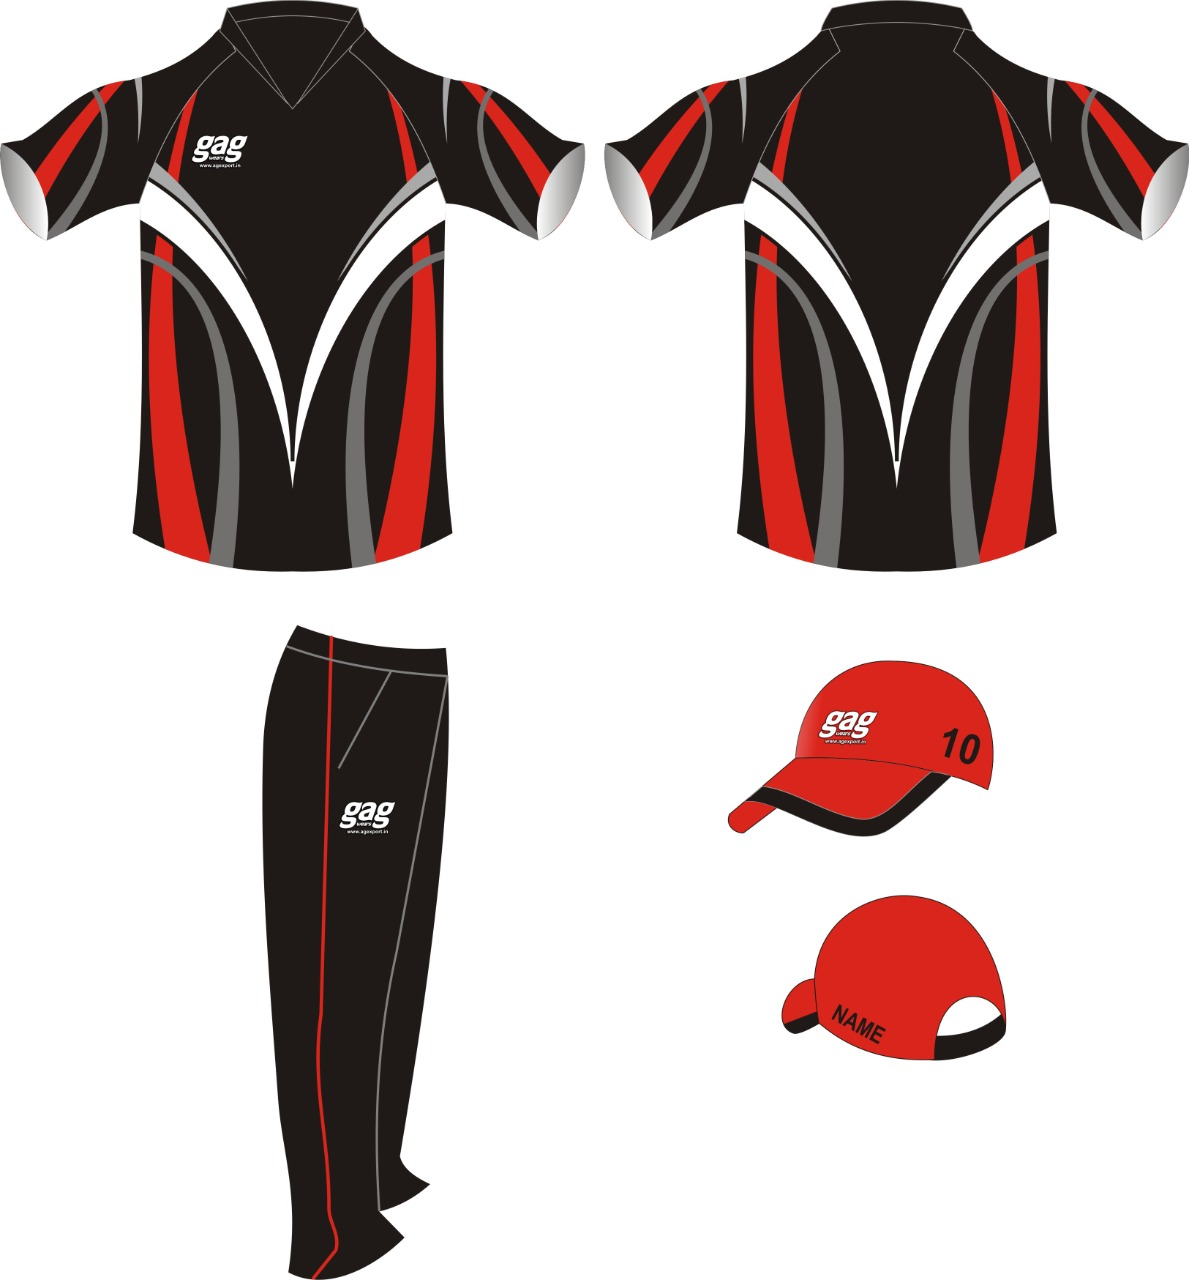 Mens Cricket Uniform Manufacturers in Jalandhar in Bangladesh